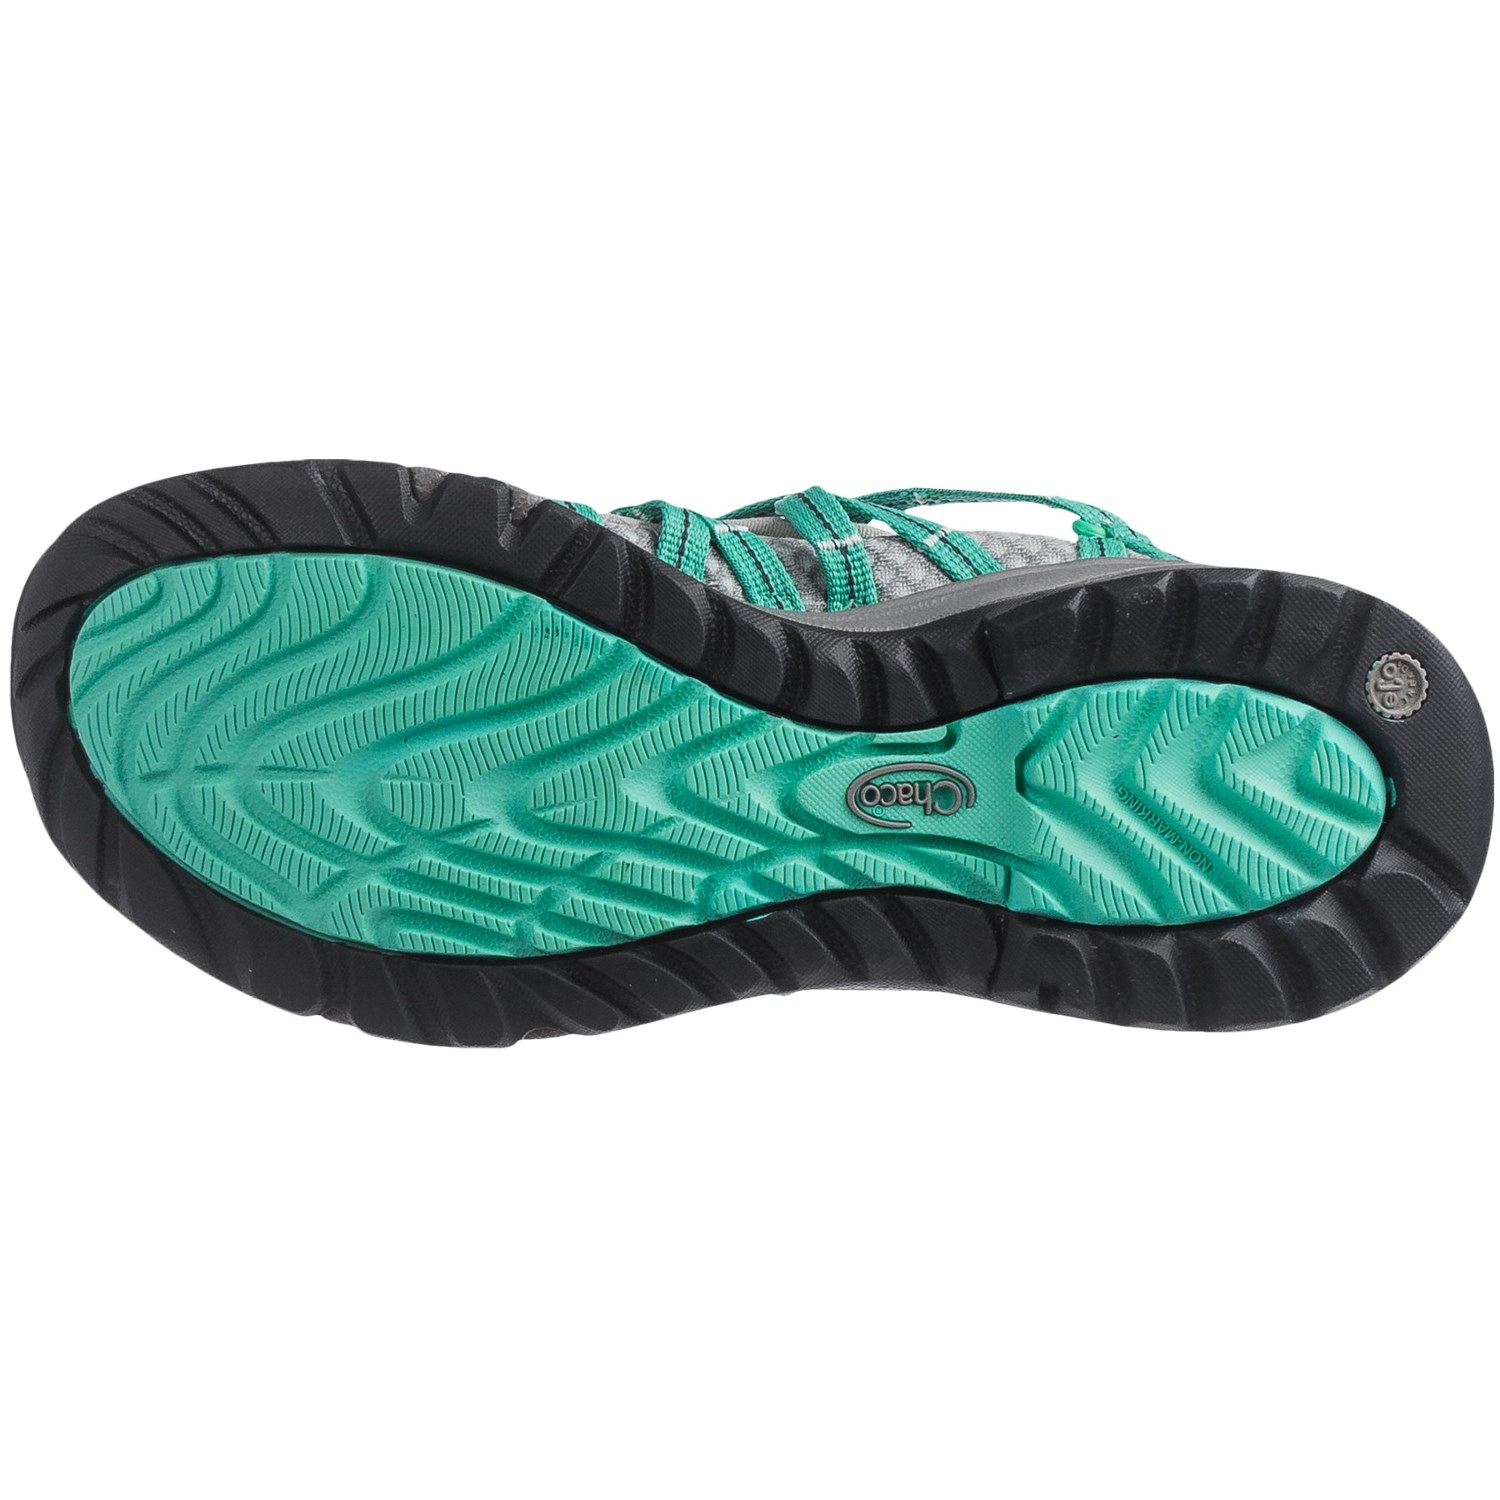 Chaco OutCross Evo Free Water Shoes (For Women) - Save 45%